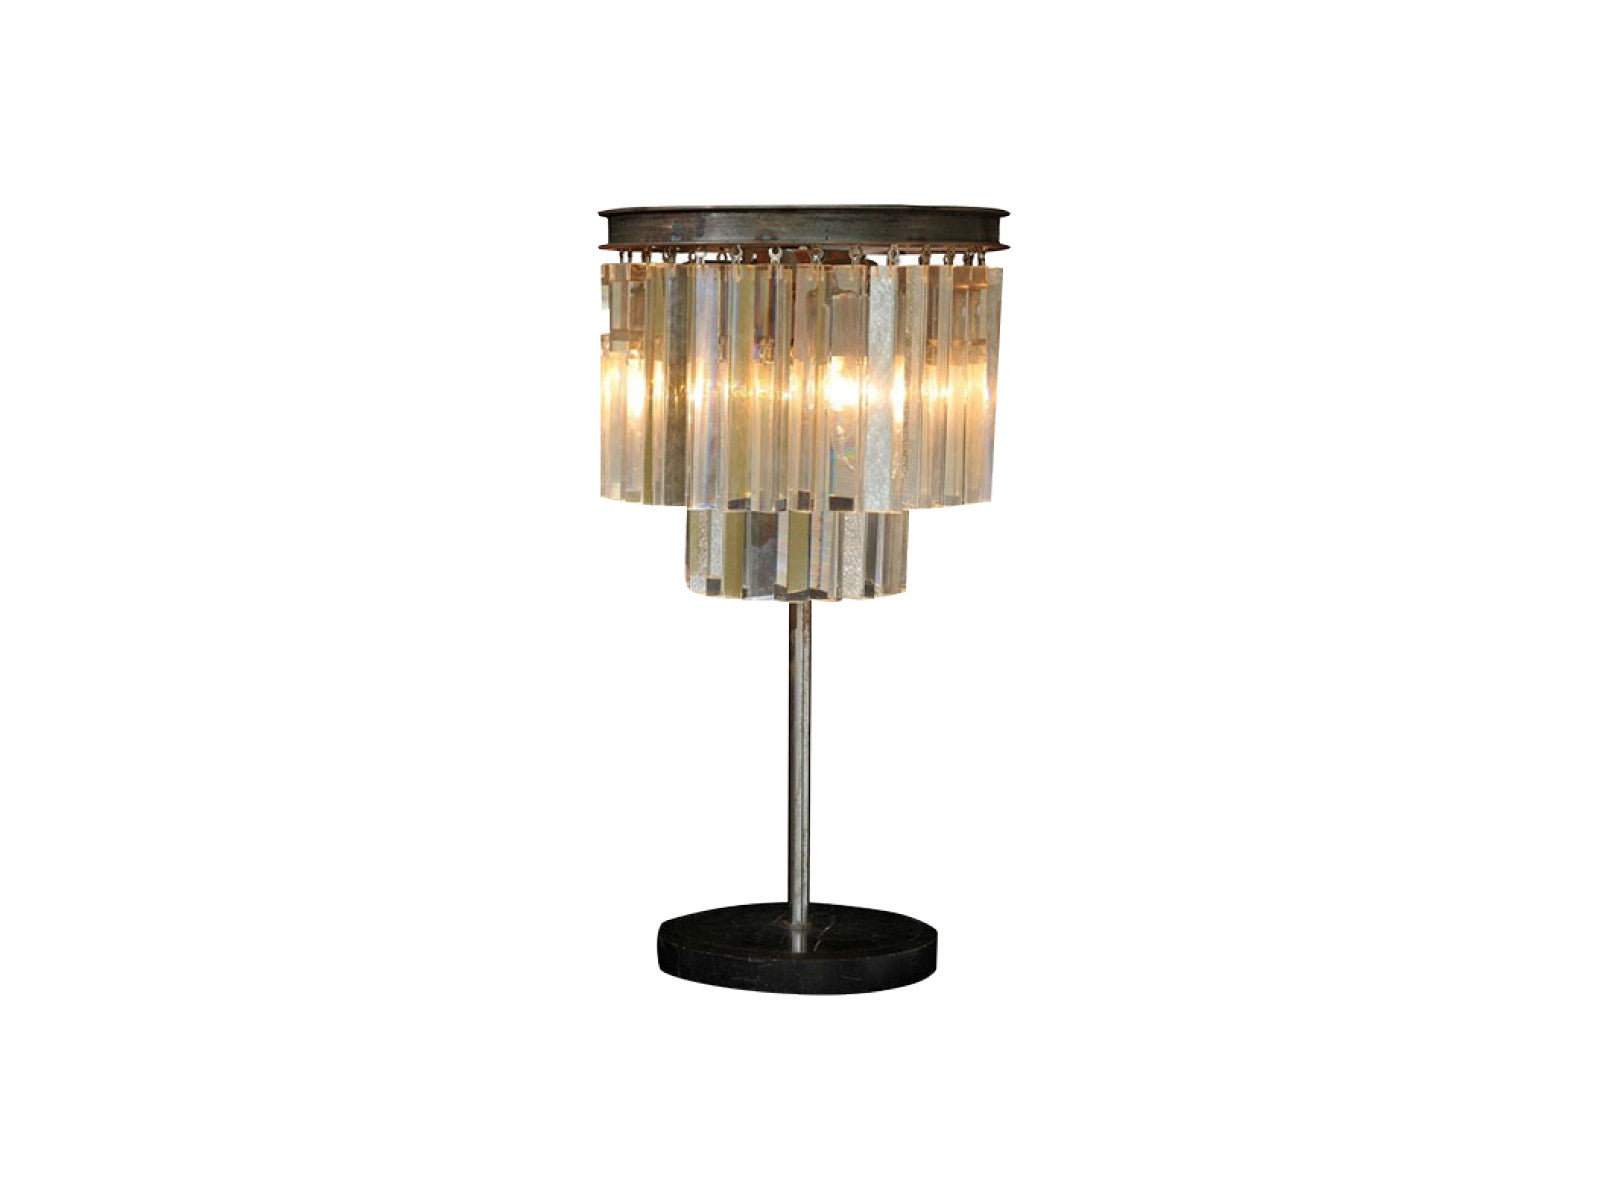 Odeon_Table_L&_TimothyOulton_DawsonandCo  sc 1 st  Dawson u0026 Co & Odeon Table Lamp by Timothy Oulton | Dawson And Co | Auckland ...